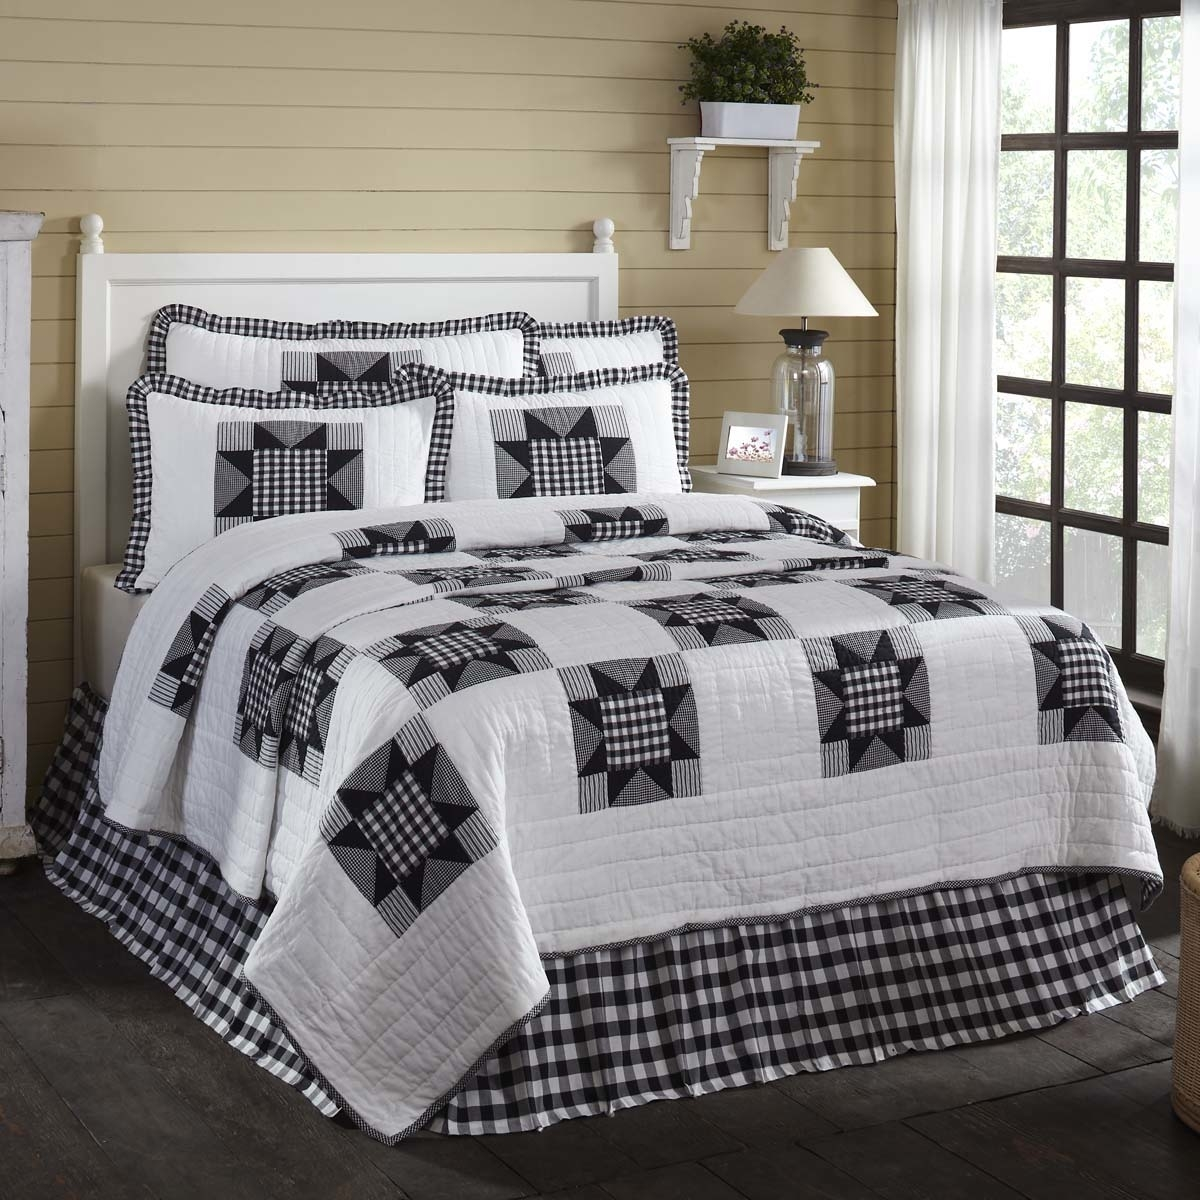 Farmhouse Bedding Emmie White Quilt